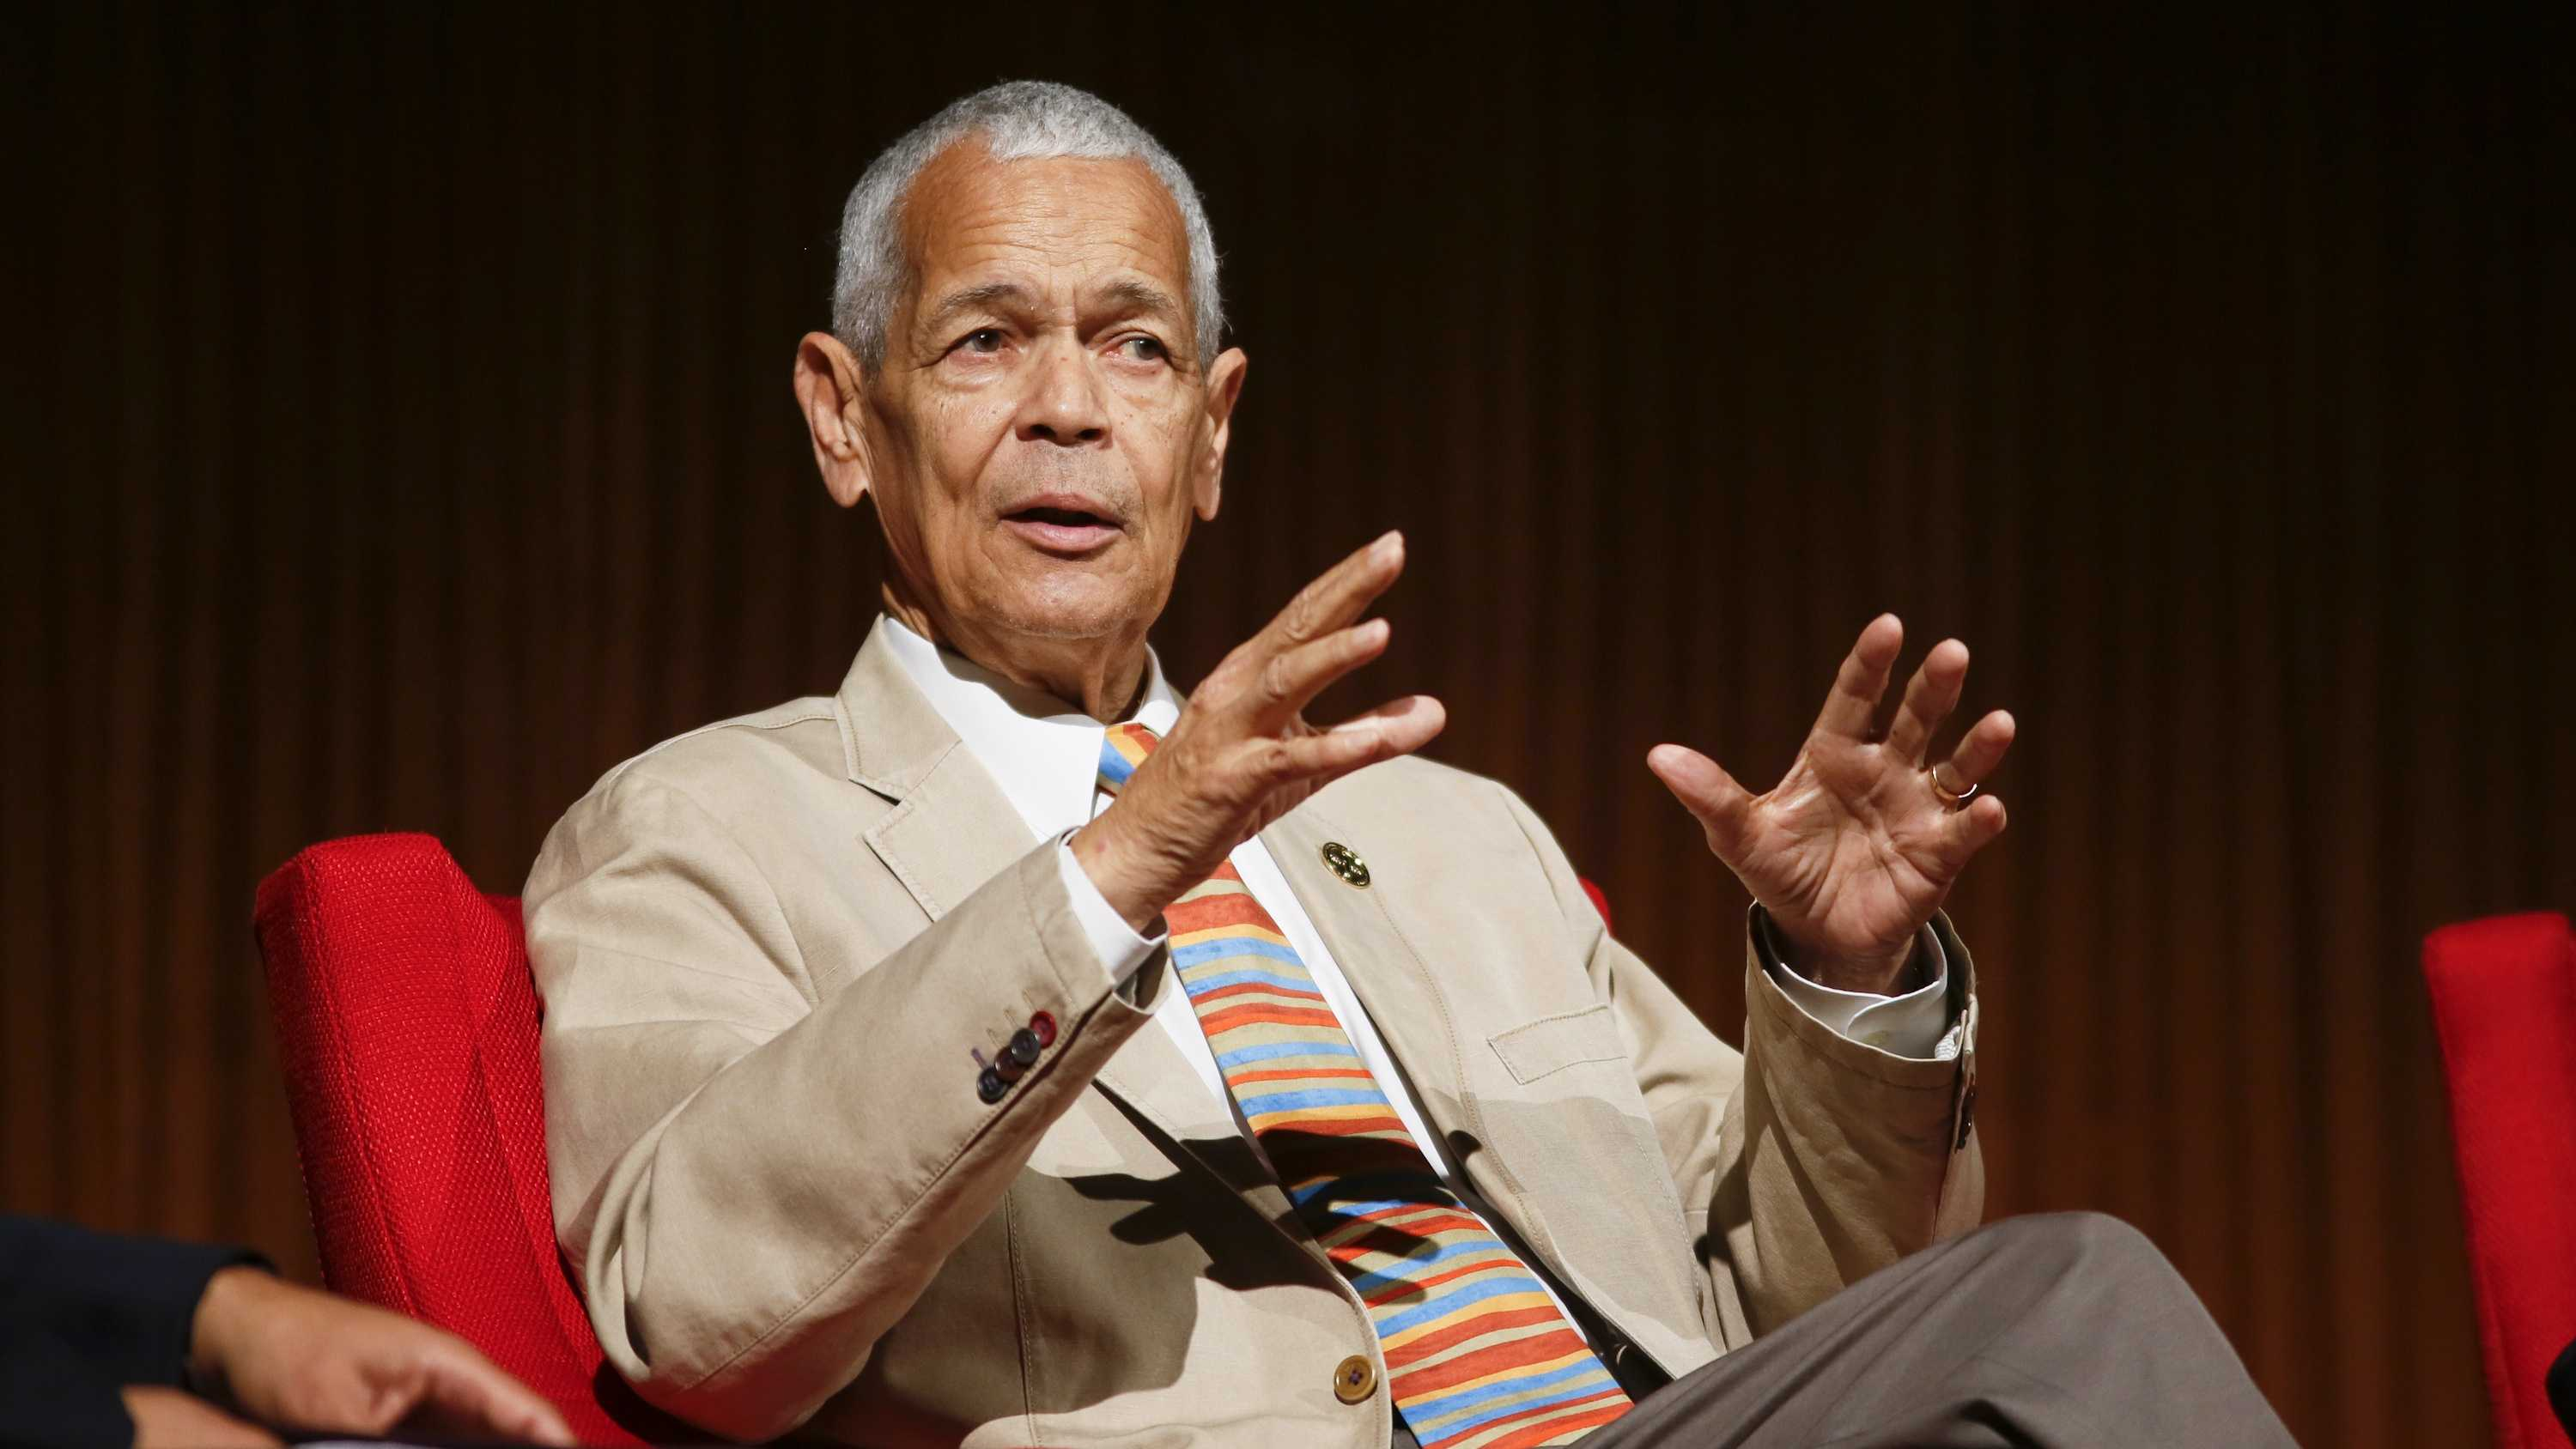 Julian Bond was a civil rights activist and longtime board chairman of the NAACP. Bond was considered a symbol and icon of the 1960s civil rights movement. As a Morehouse College student, Bond helped found the Student Non-Violent Coordinating Committee and was on the front lines of protests that led to the nation's landmark civil rights laws. (January 14, 1940 – August 15, 2015)